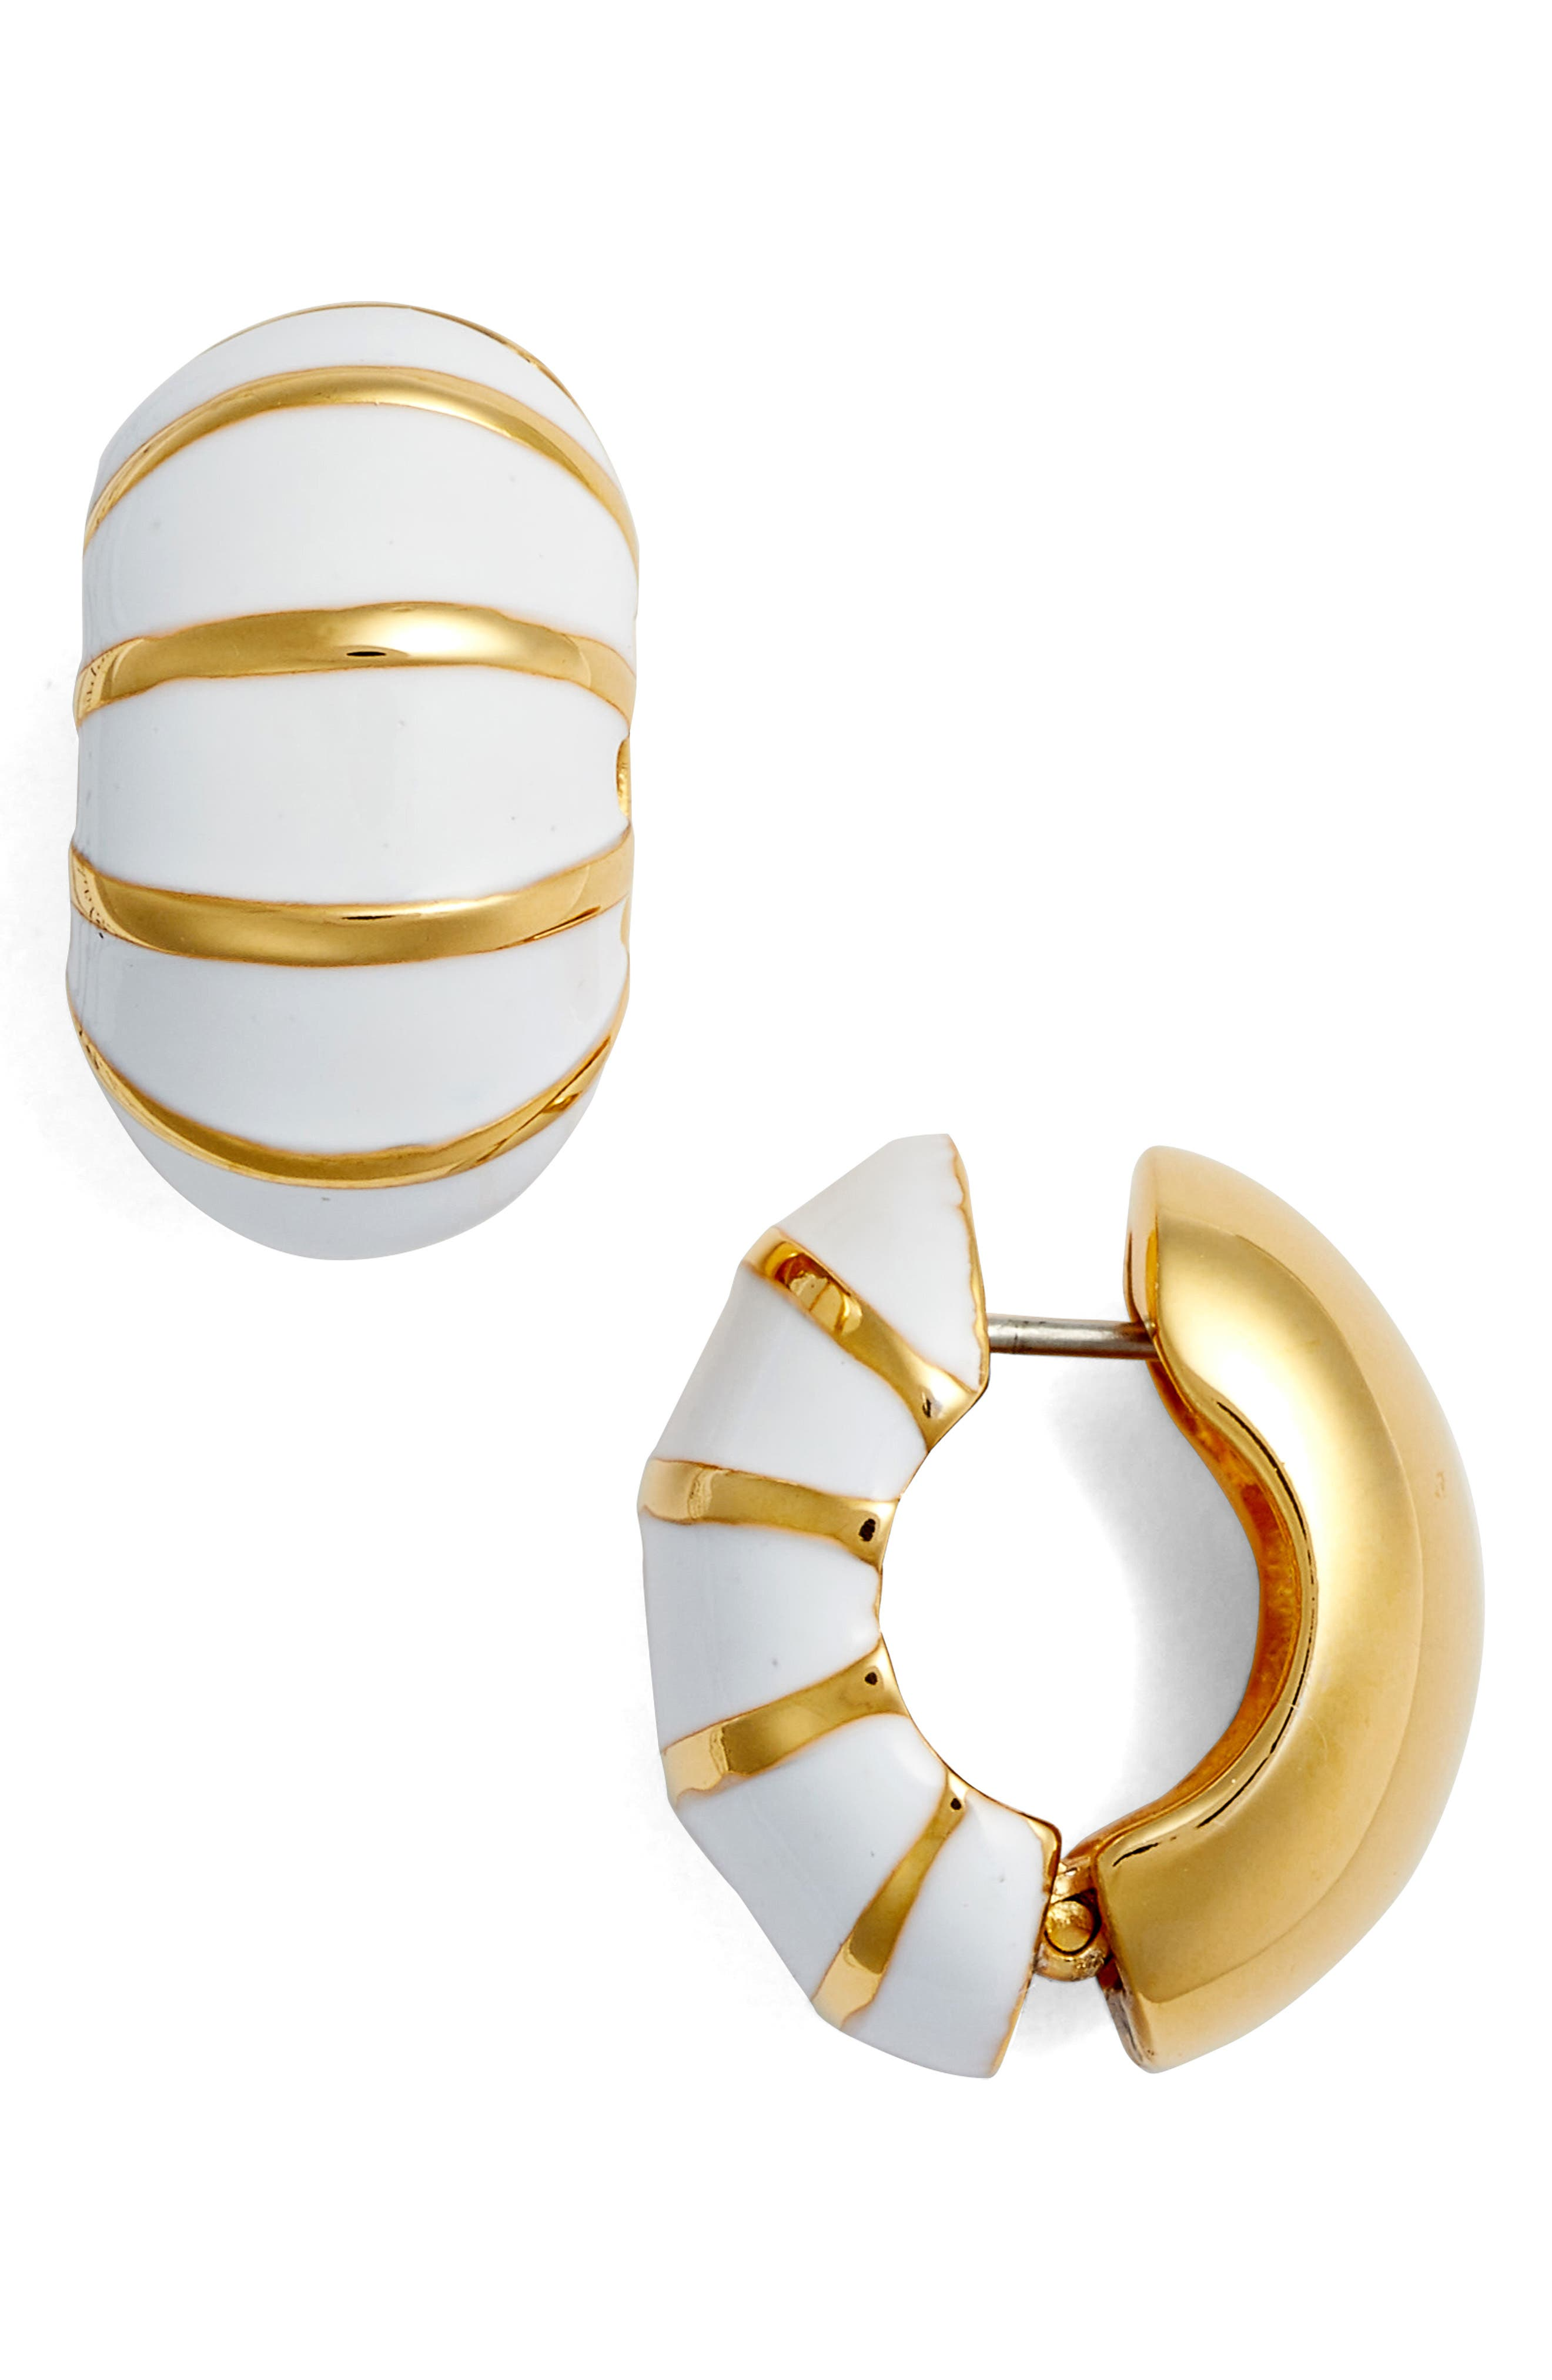 Goldtone & White Reversible Earrings,                             Main thumbnail 1, color,                             WHITE/ GOLD